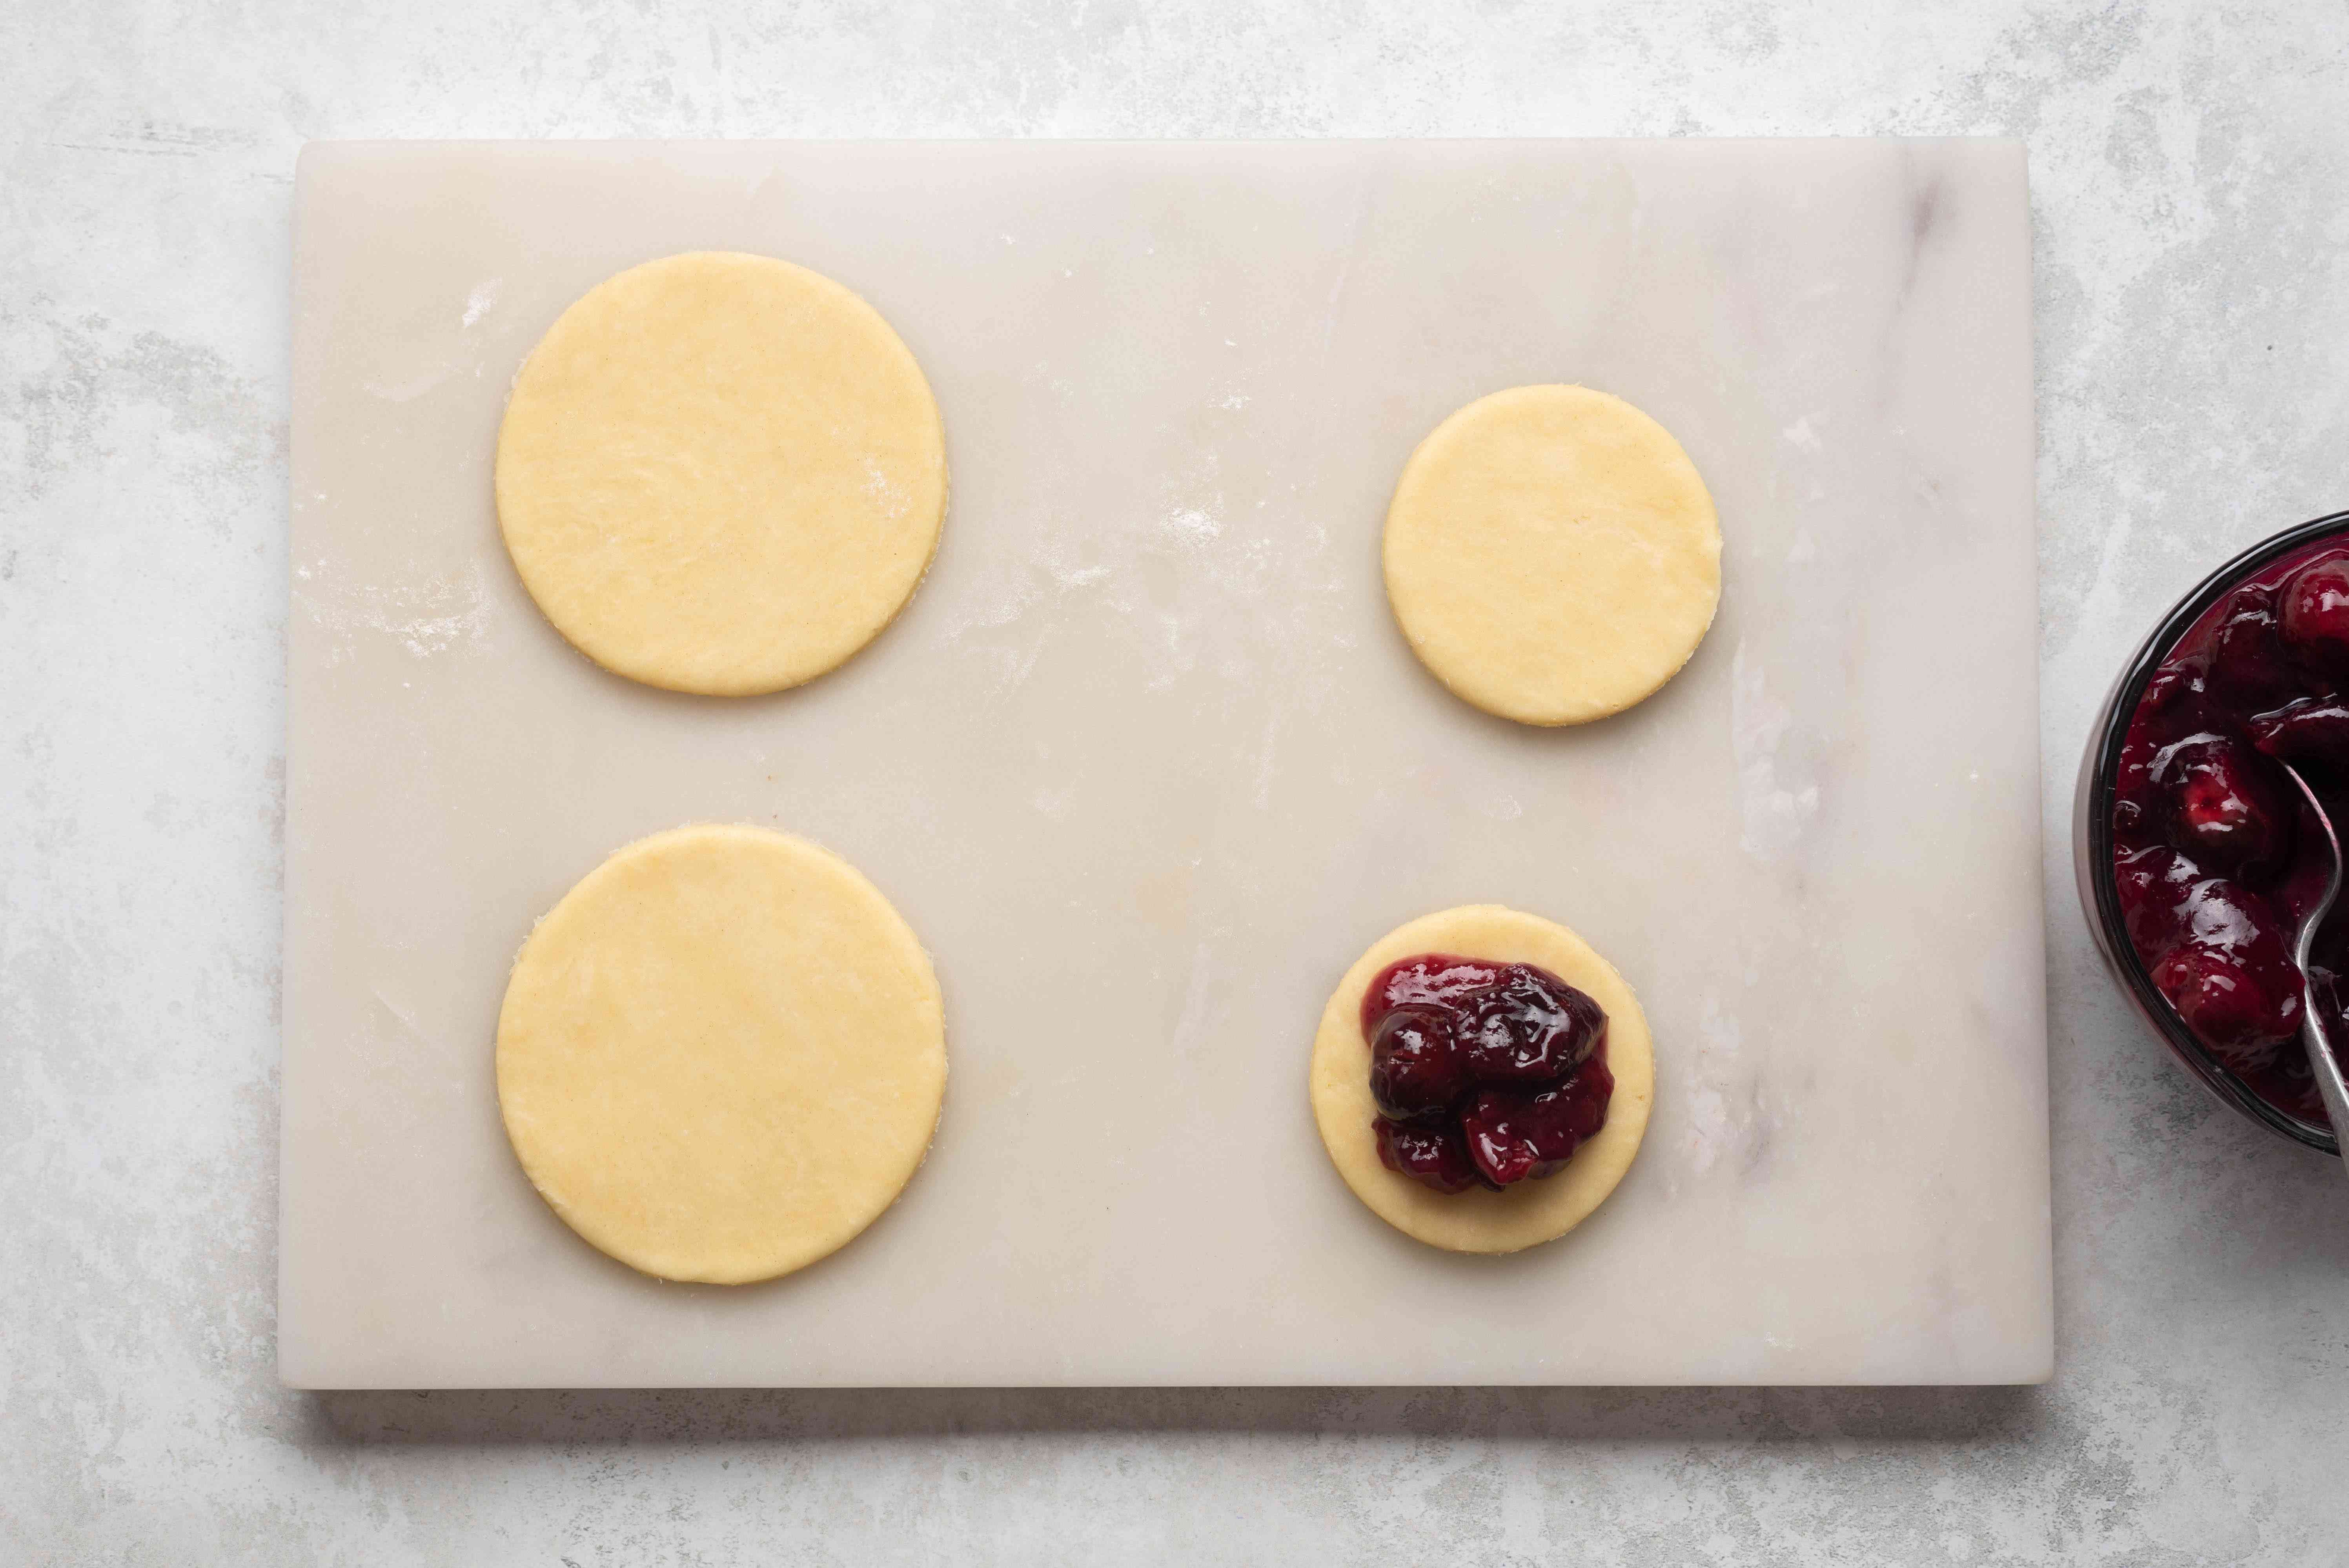 cherry filling on top of dough